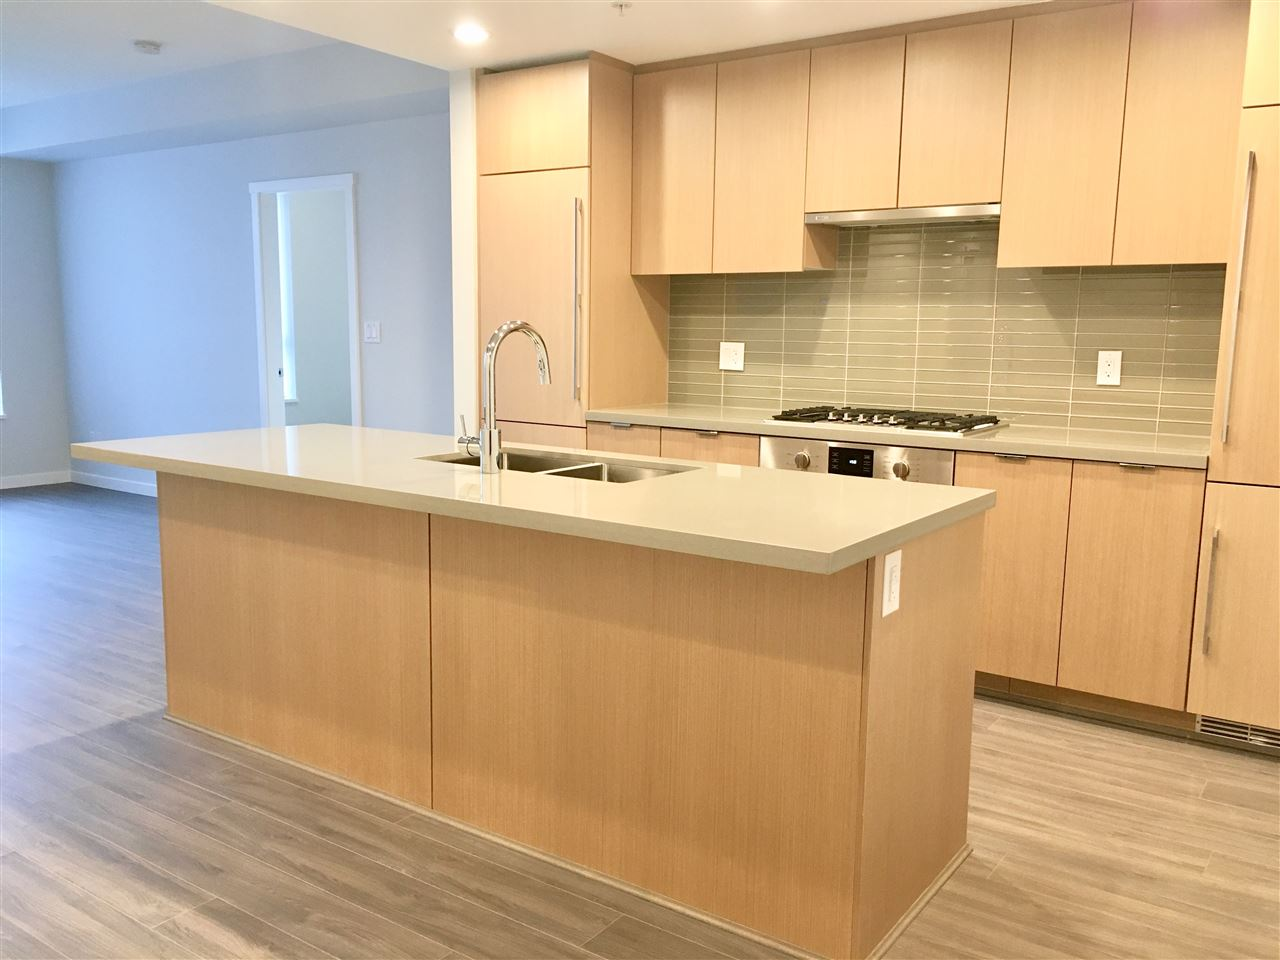 Concrete Corner North Facing Brand New 1086 Sq Ft Unit, GST Paid. 3 Bedrooms